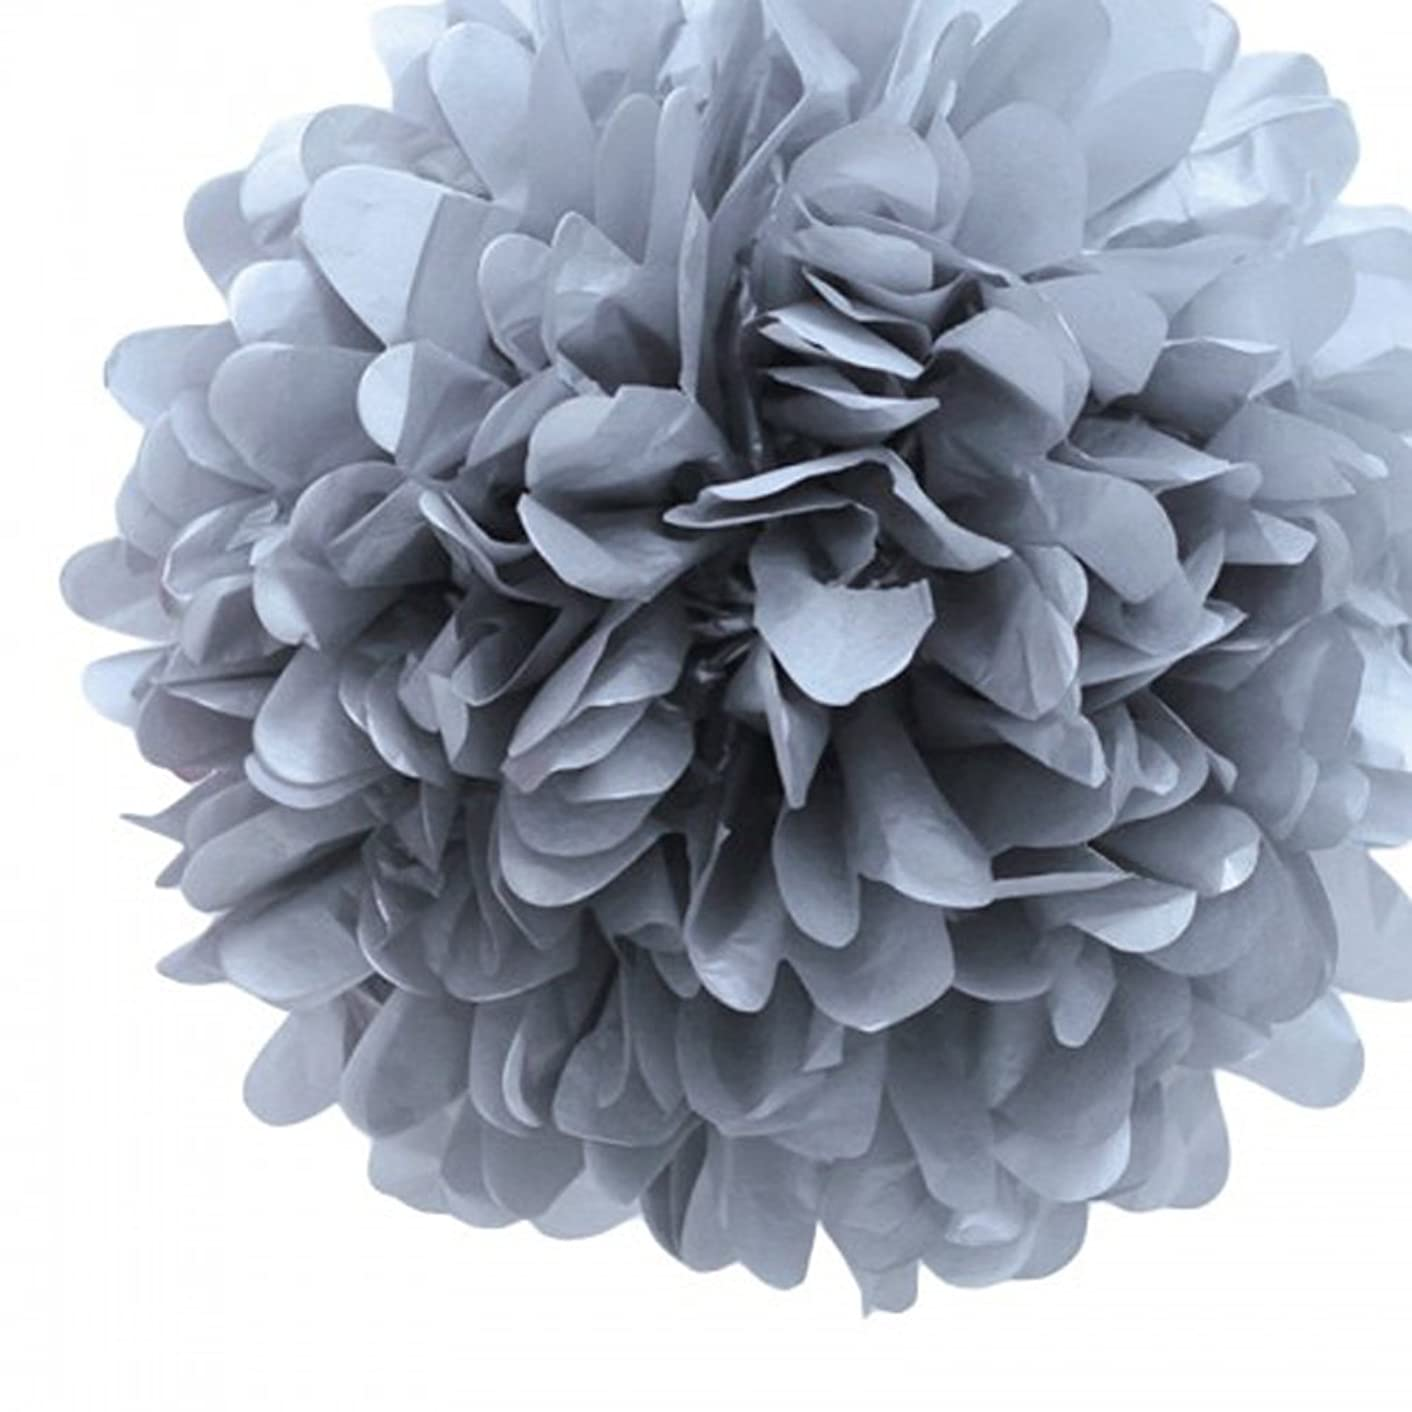 S-shine Set of 3 Tissue Pom Poms Party Decorations for Weddings, Birthday Parties Baby Showers and Nursery Décor (16-inch Diameter, Silver Grey)